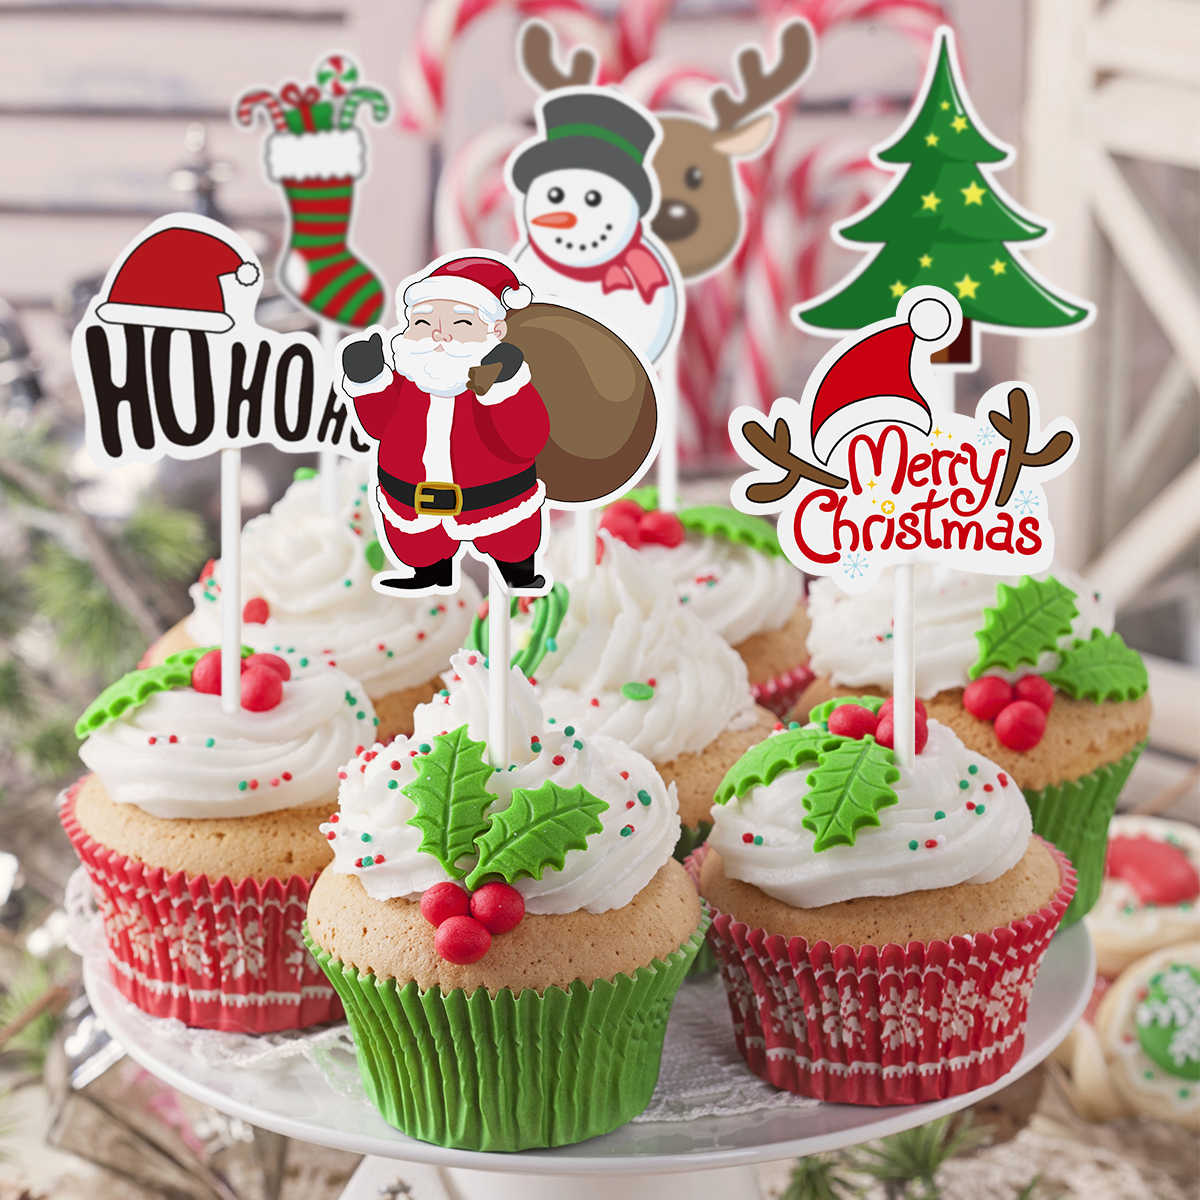 Amosfun 72PCS Christmas Cupcake Toppers Santa Claus Tree Snowman ถุงเท้า Candy Theme PARTY เค้ก Toppers Picks อุปกรณ์ตกแต่ง